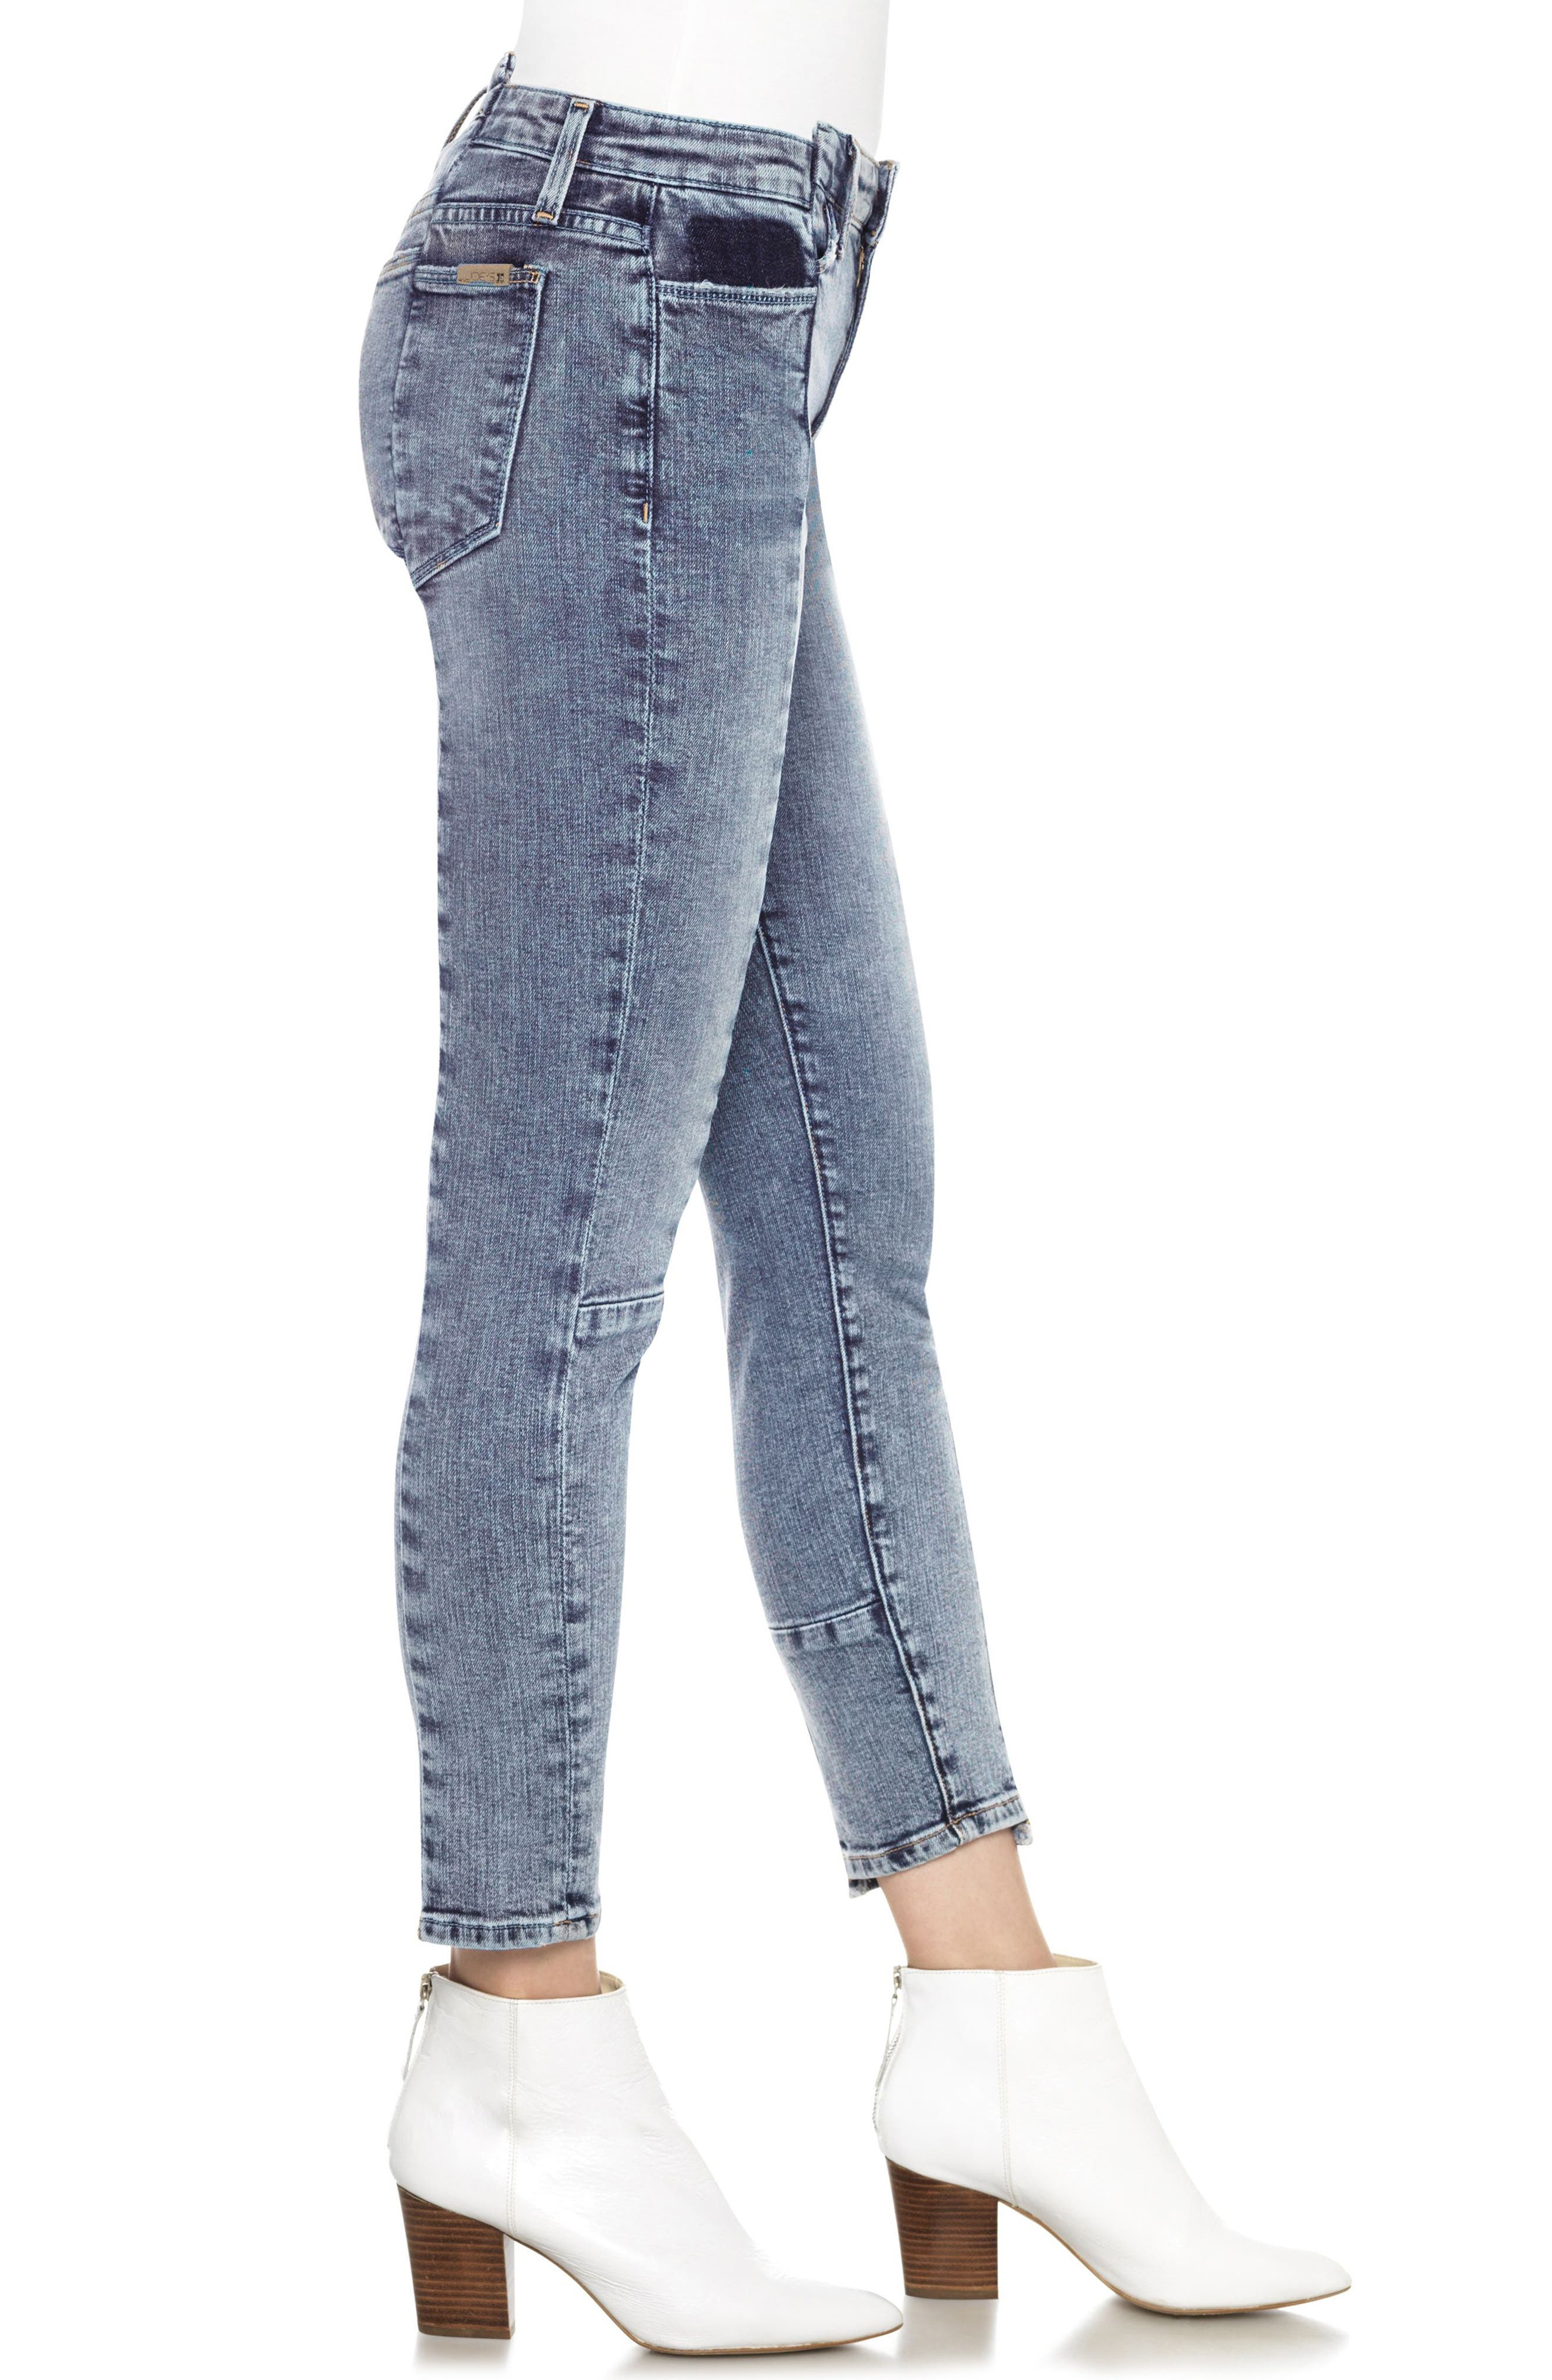 Smith Skinny Ankle Jeans,                             Alternate thumbnail 3, color,                             010